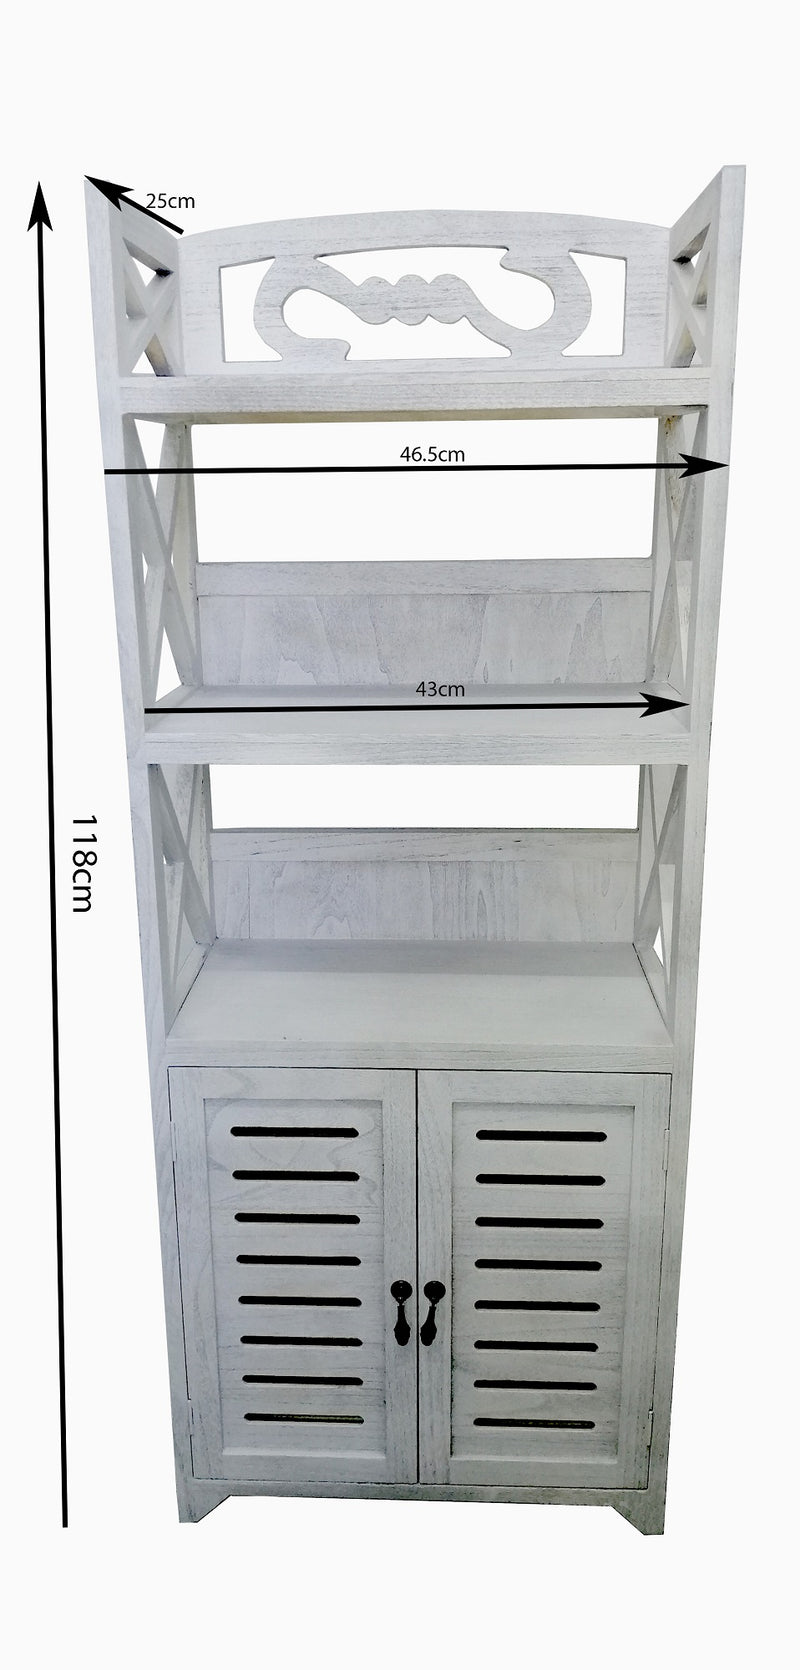 Washed White Wooden Shelf Unit Stand Shelves Organiser Compact With Doors HW-640W